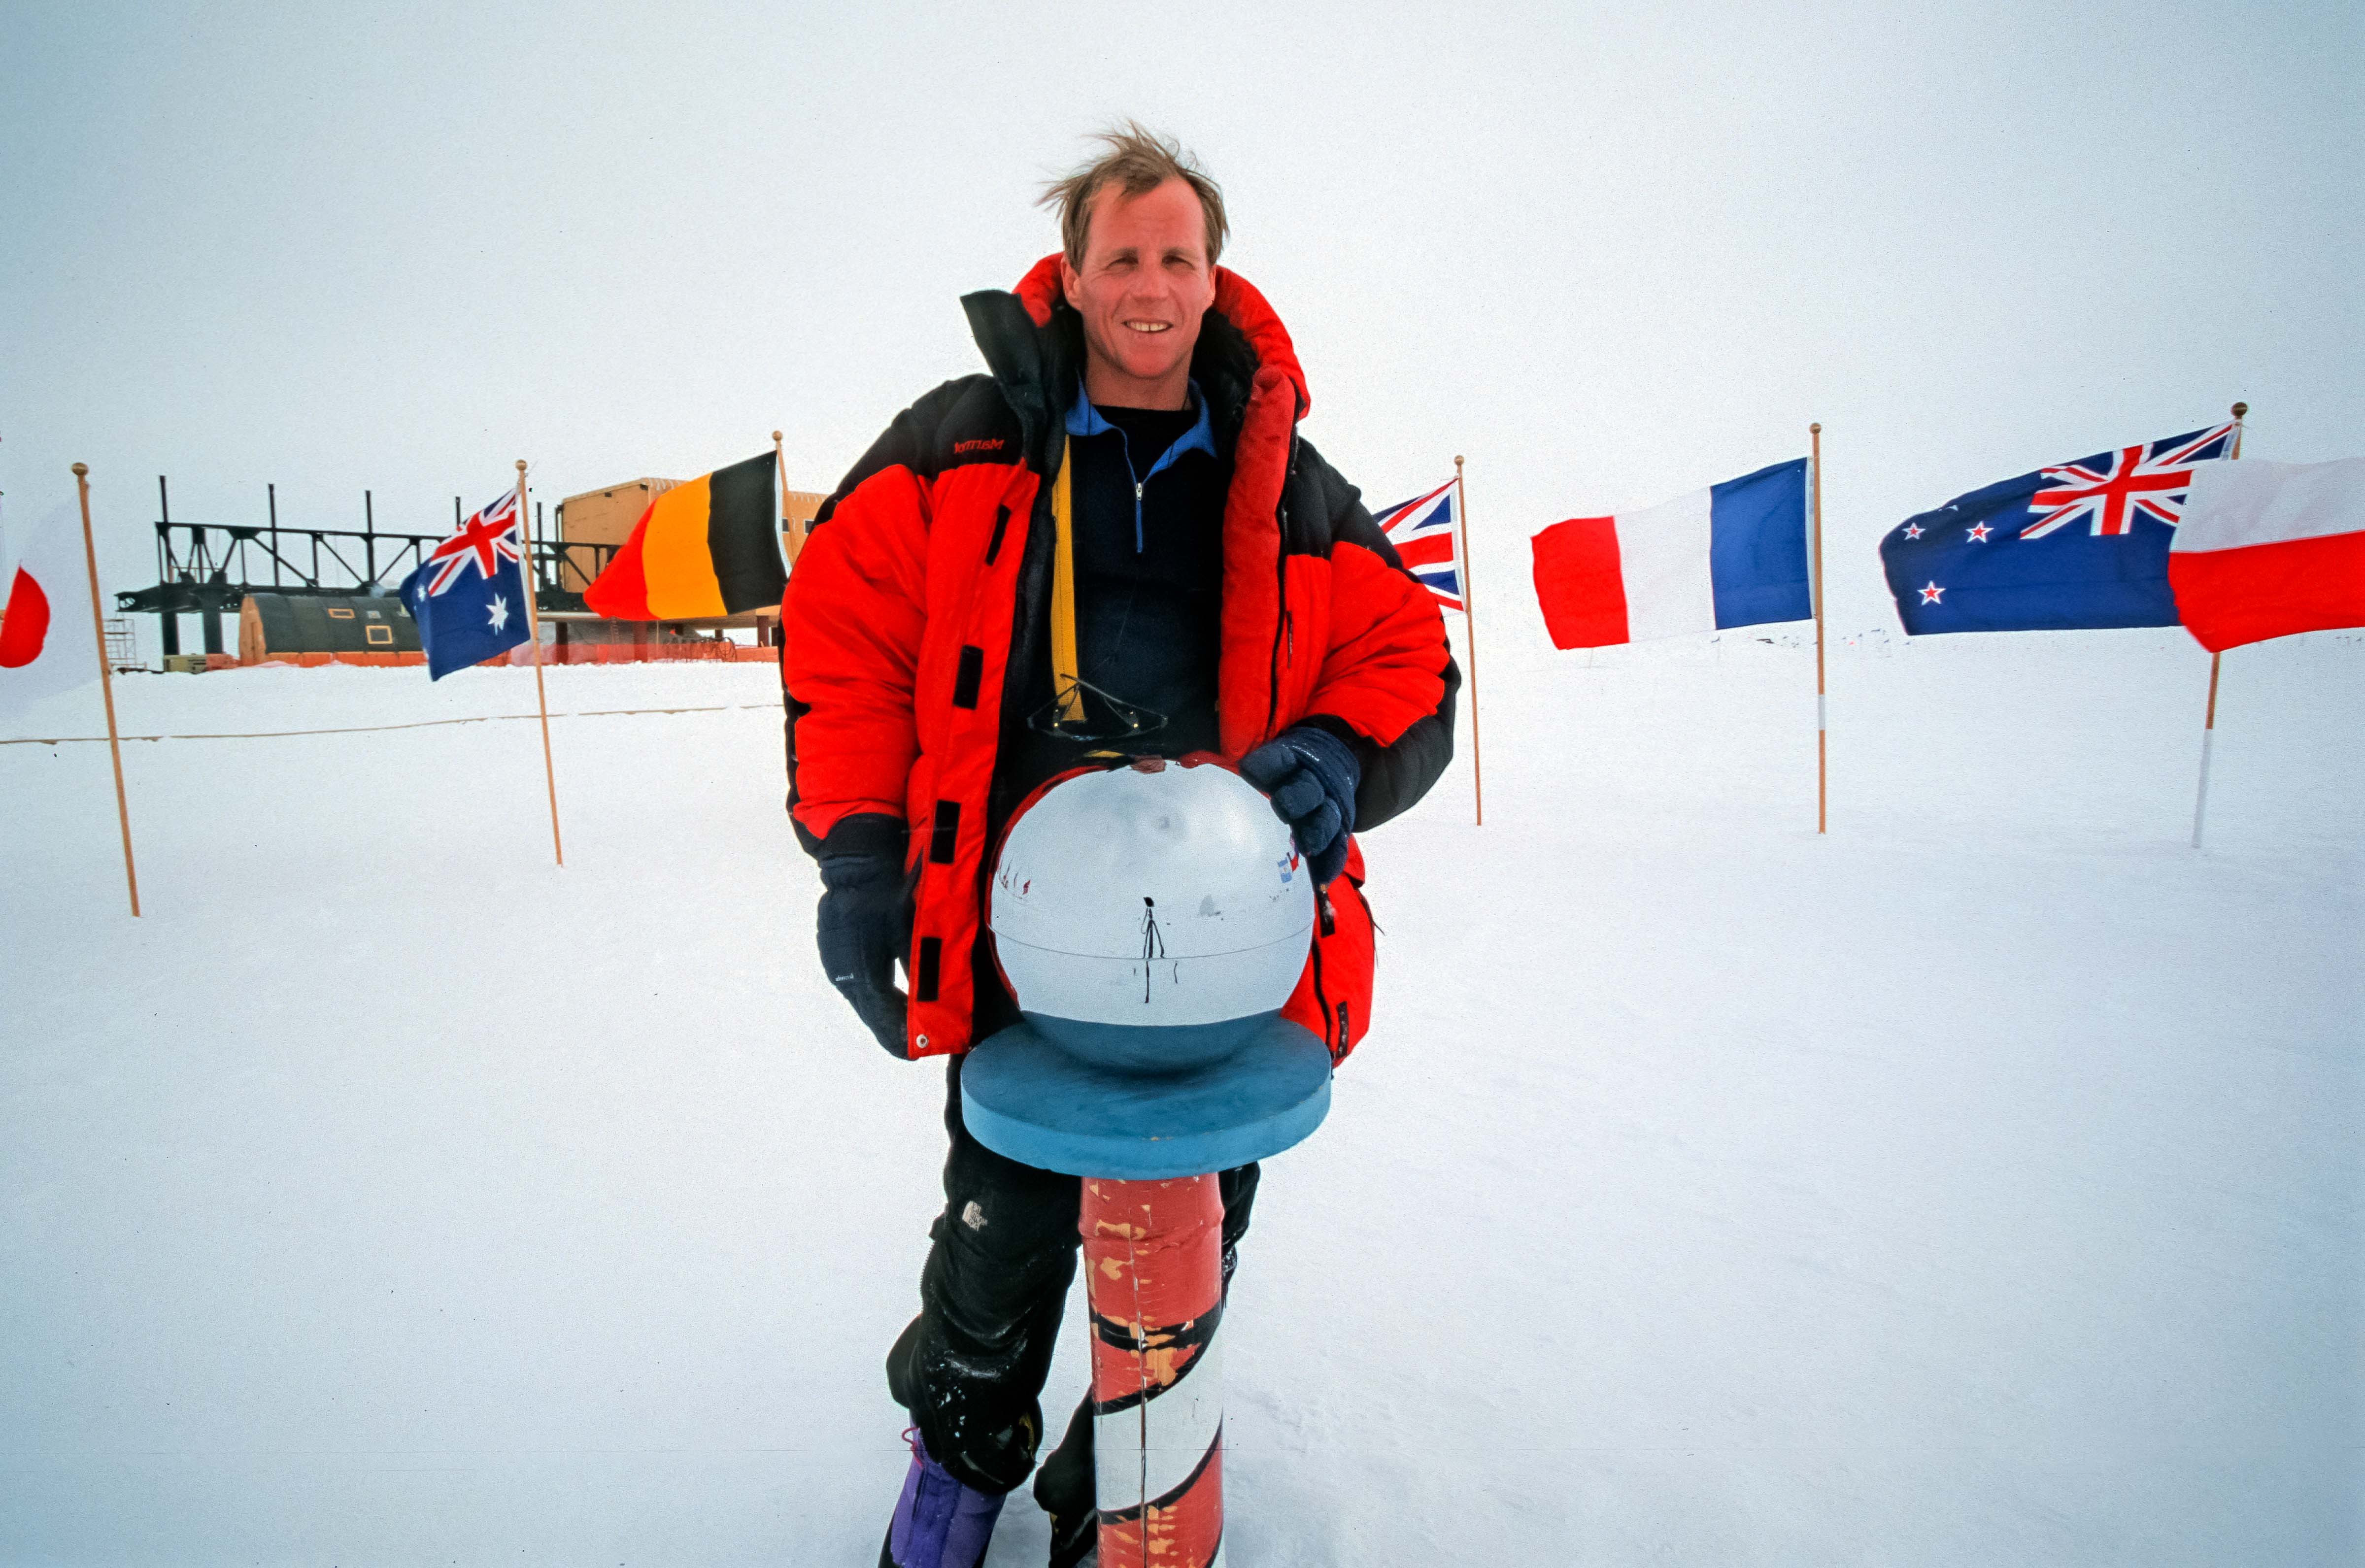 Antarctica, Jeff Shea at South Pole with Globe, 2001